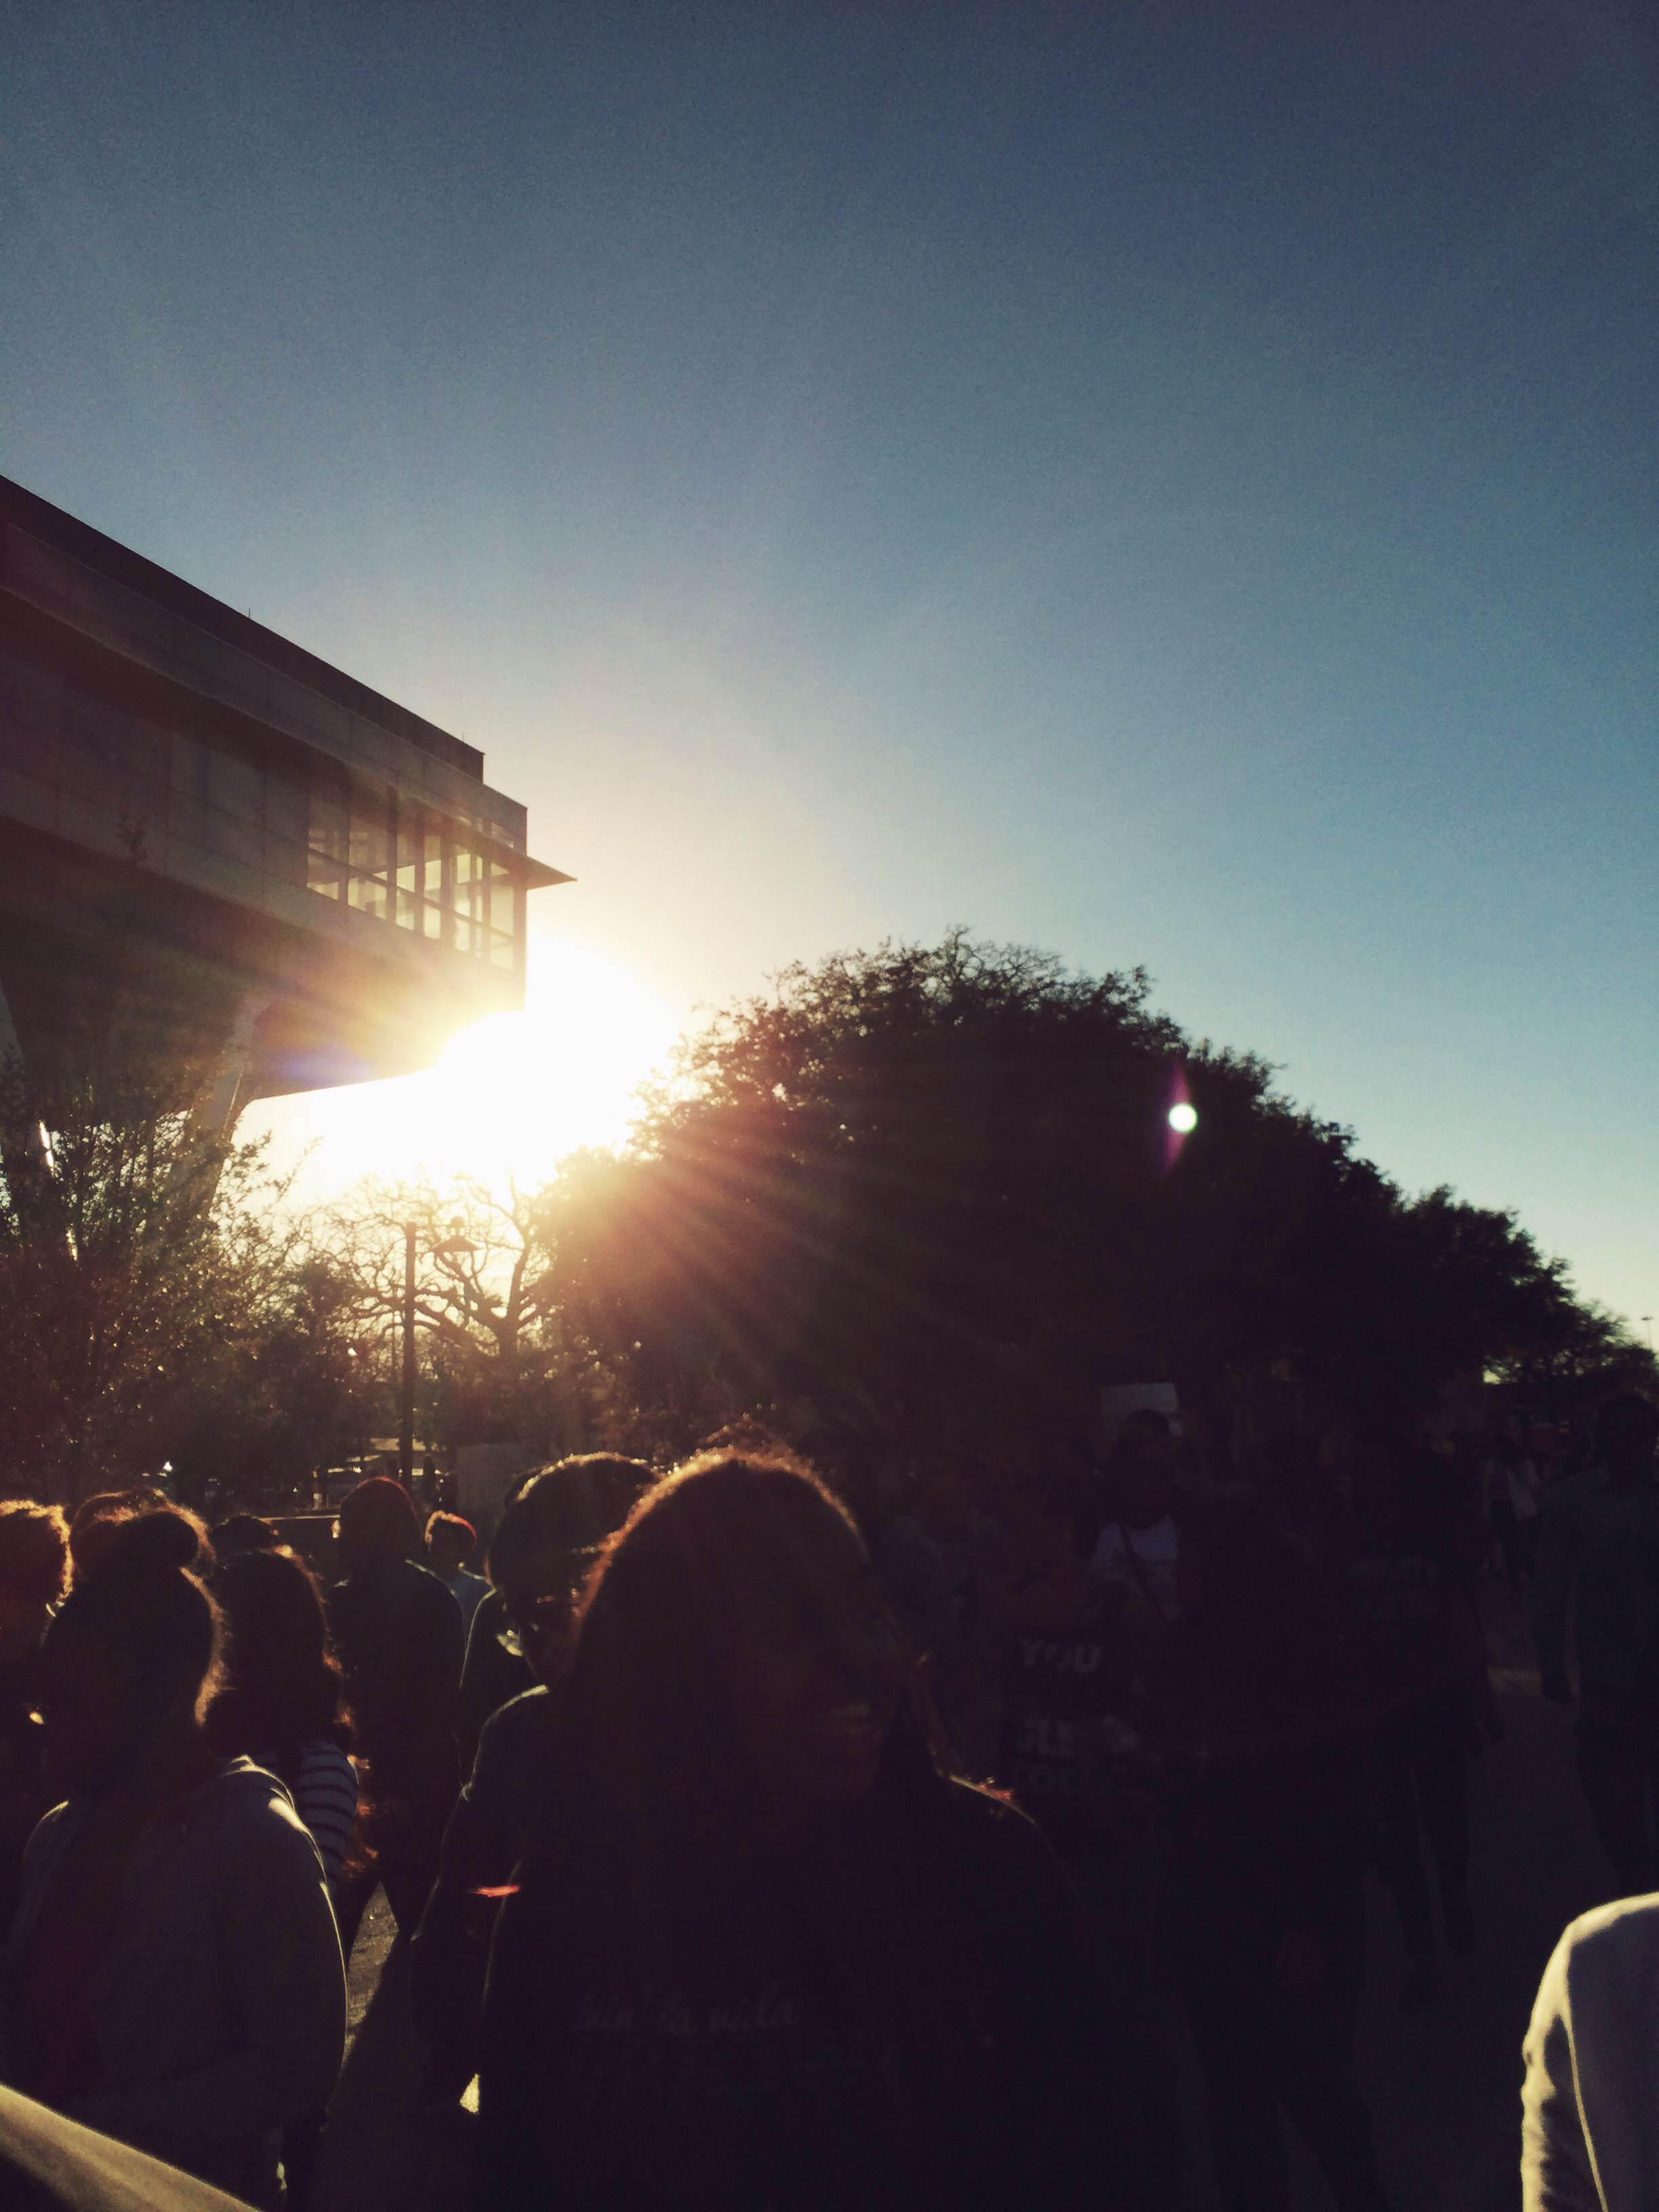 We joined the march from UNT to the MLK Center to celebrate Dr. King's legacy.